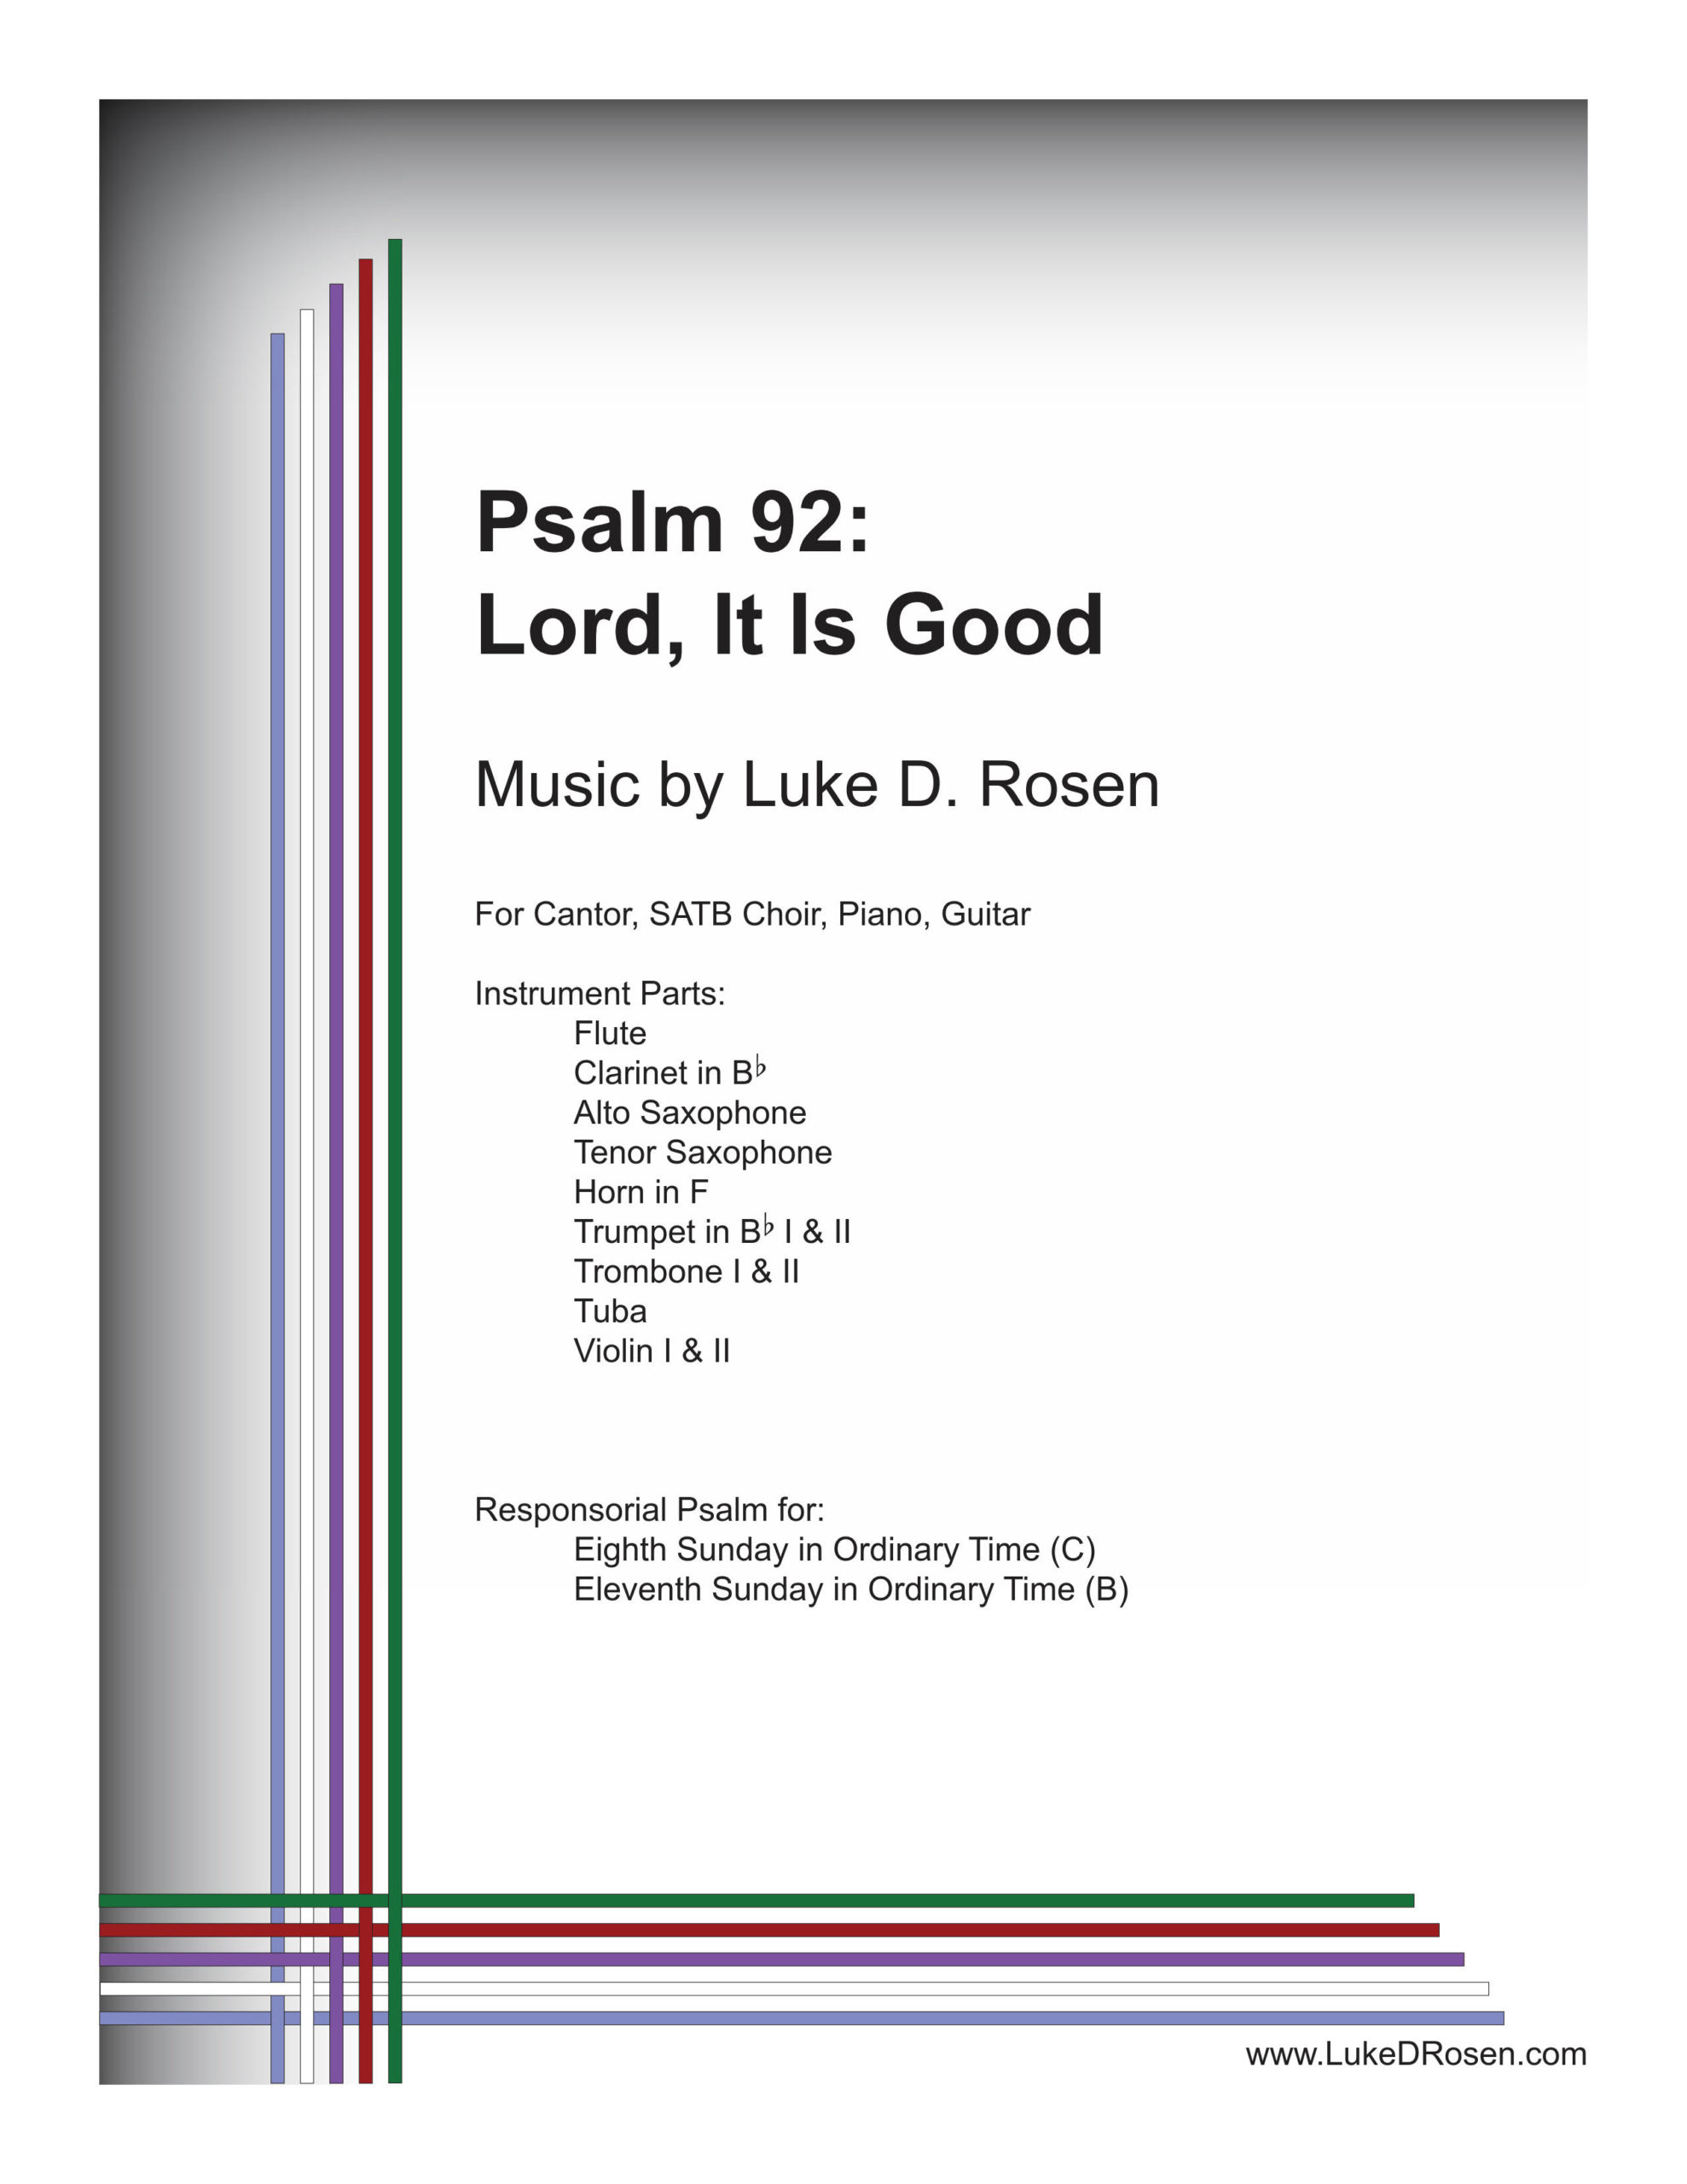 Psalm 92 Lord It Is Good Rosen Sample Complete PDF 1 png